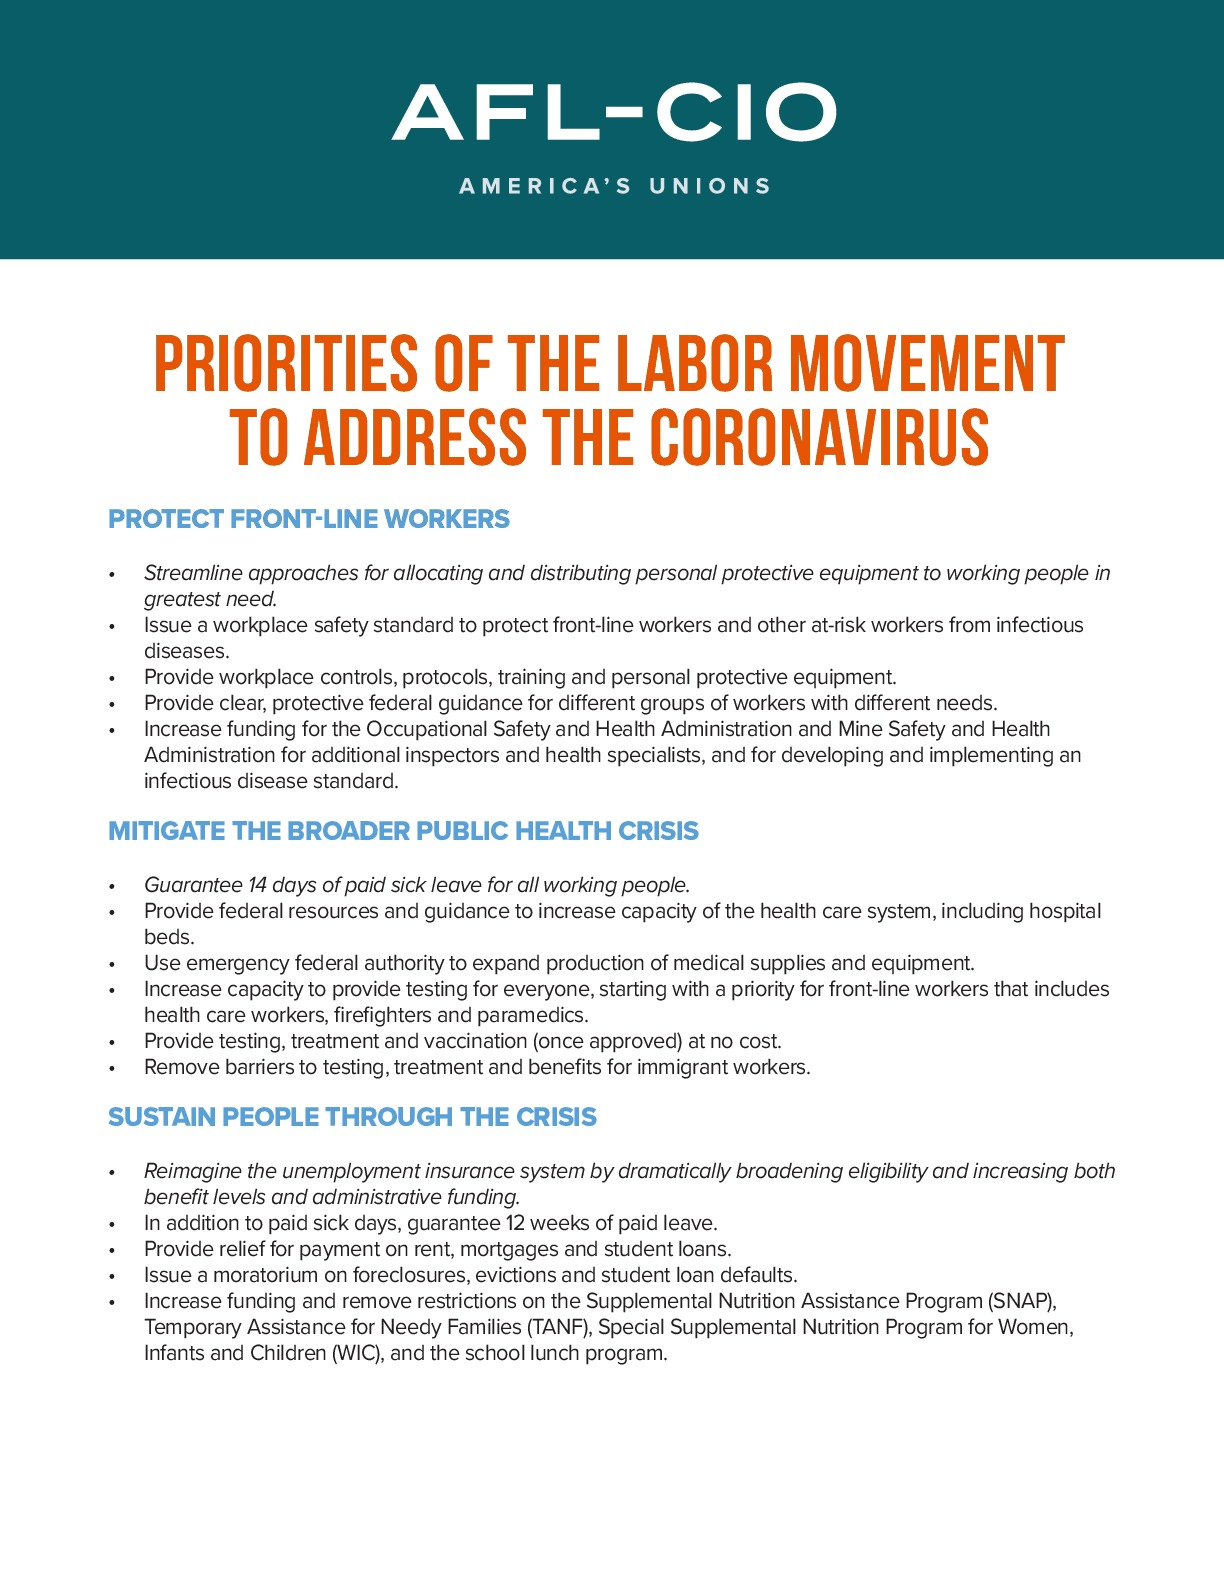 Priorities of the Labor Movement to Address the Coronavirus